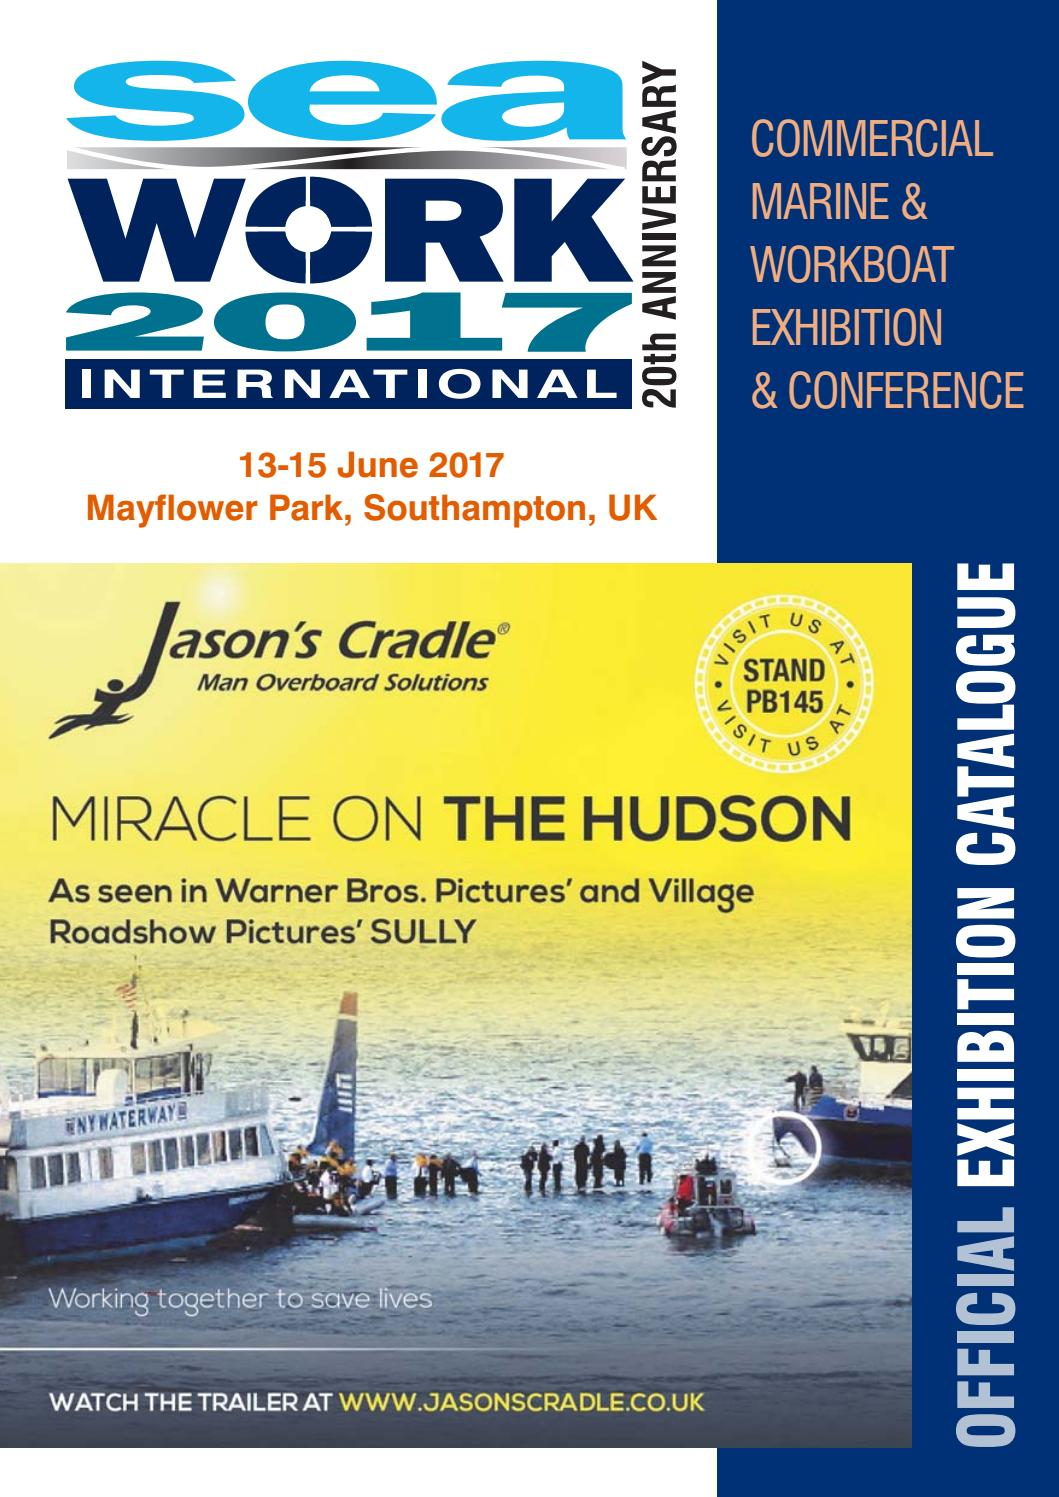 Seawork cat pages 2017 web by mercator media issuu malvernweather Images